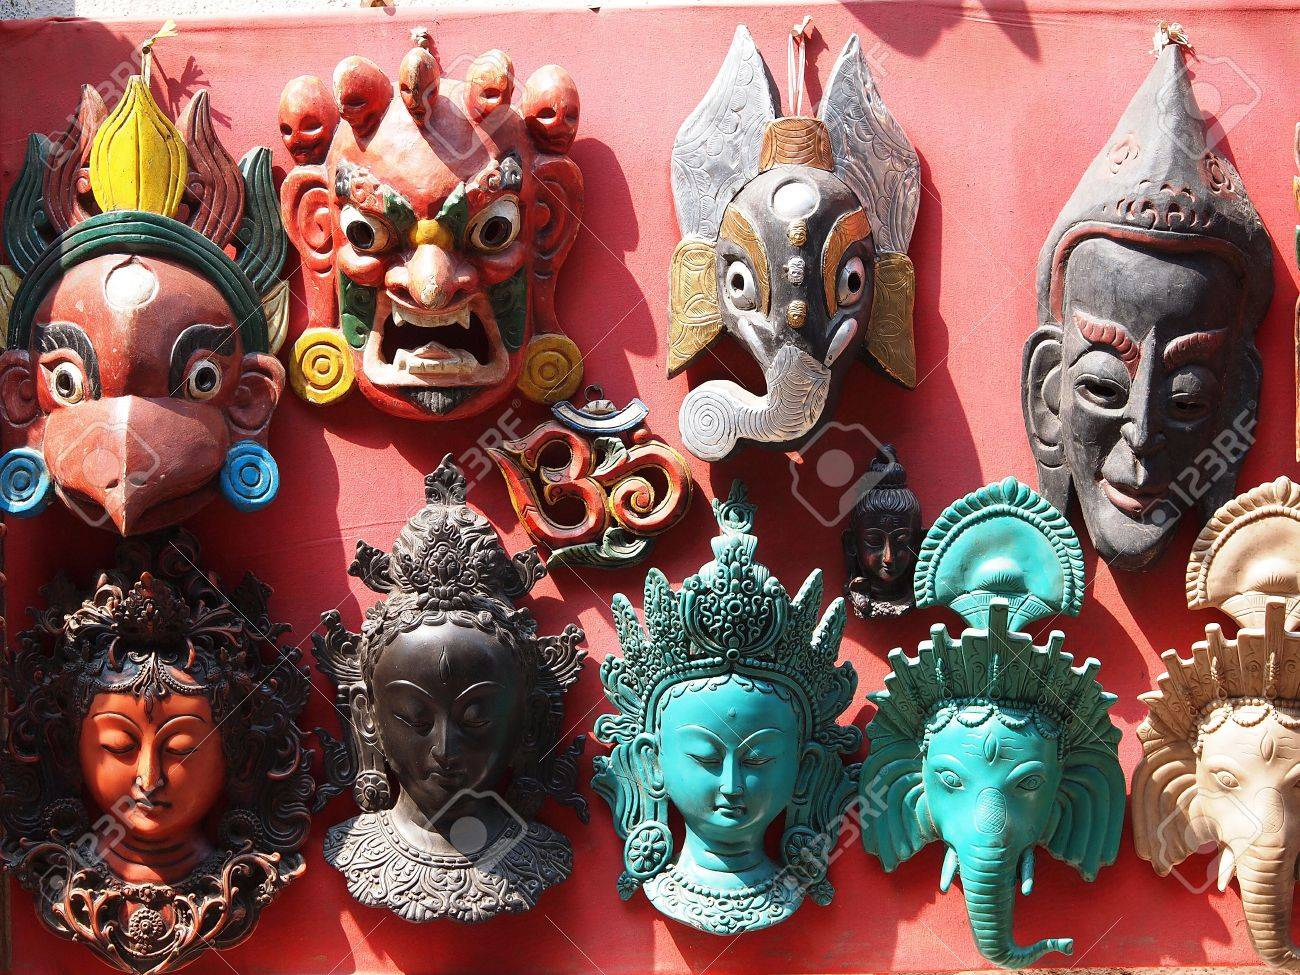 Nepali masks on display in the markets of Bhaktapur, Nepal